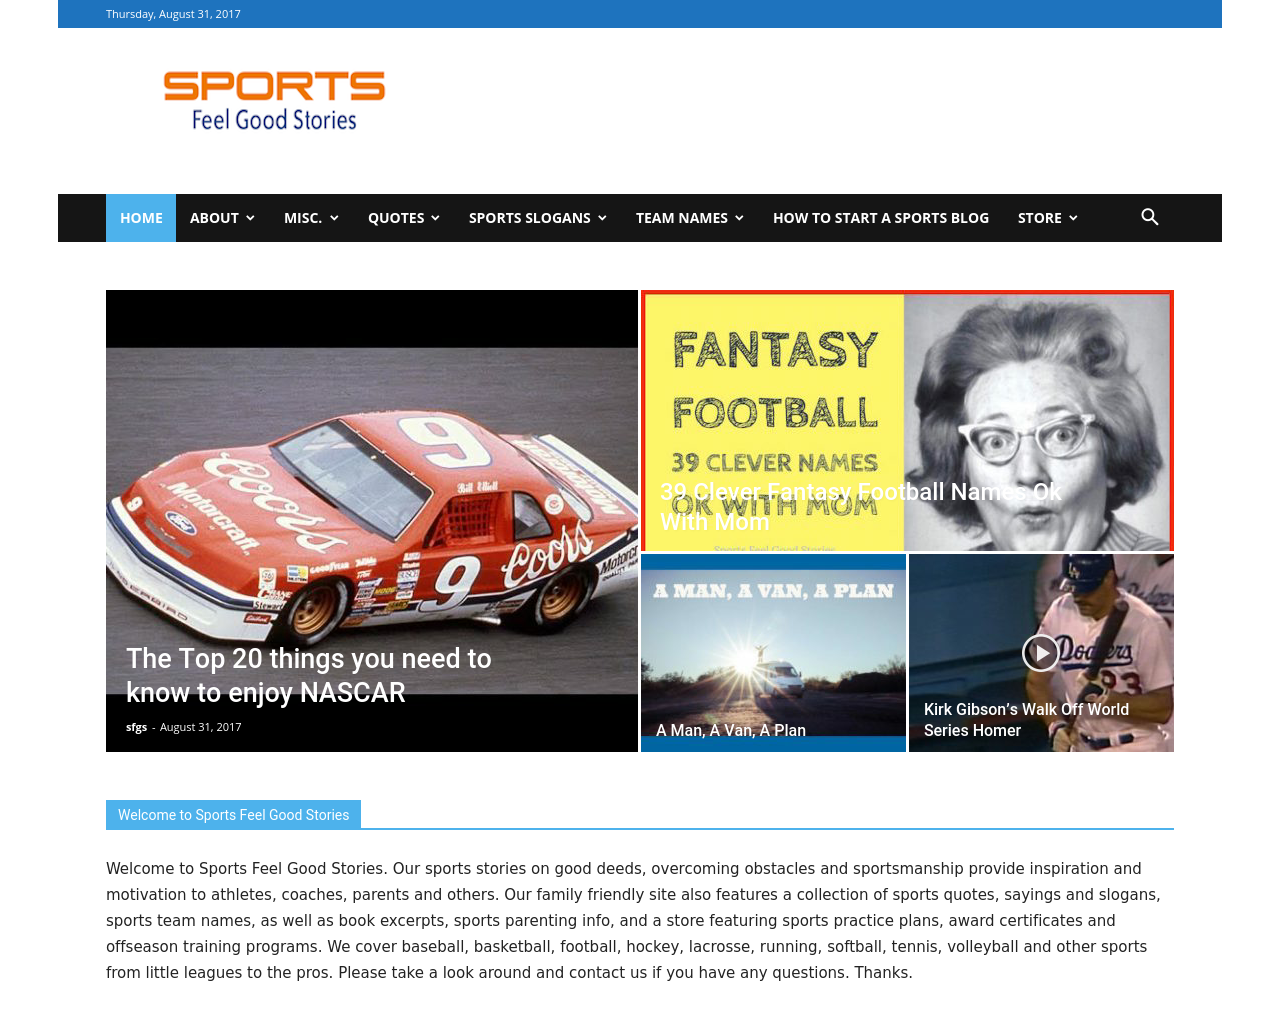 Sports-Feel-Good-Stories-Advertising-Reviews-Pricing